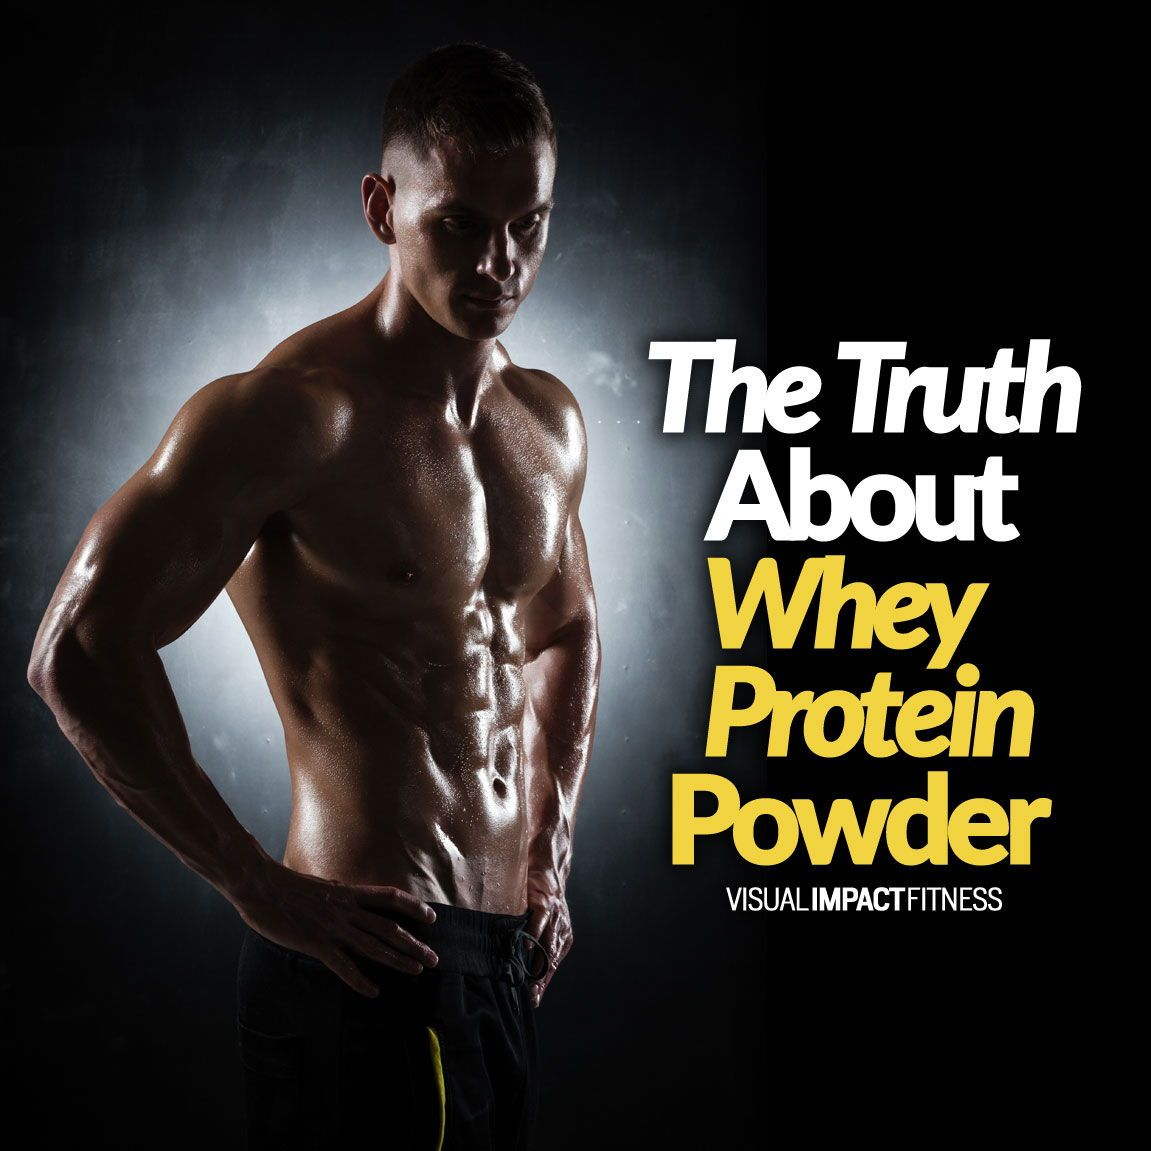 The Truth About Whey Protein Powder Whey protein powder Protein to build muscle Workout plan